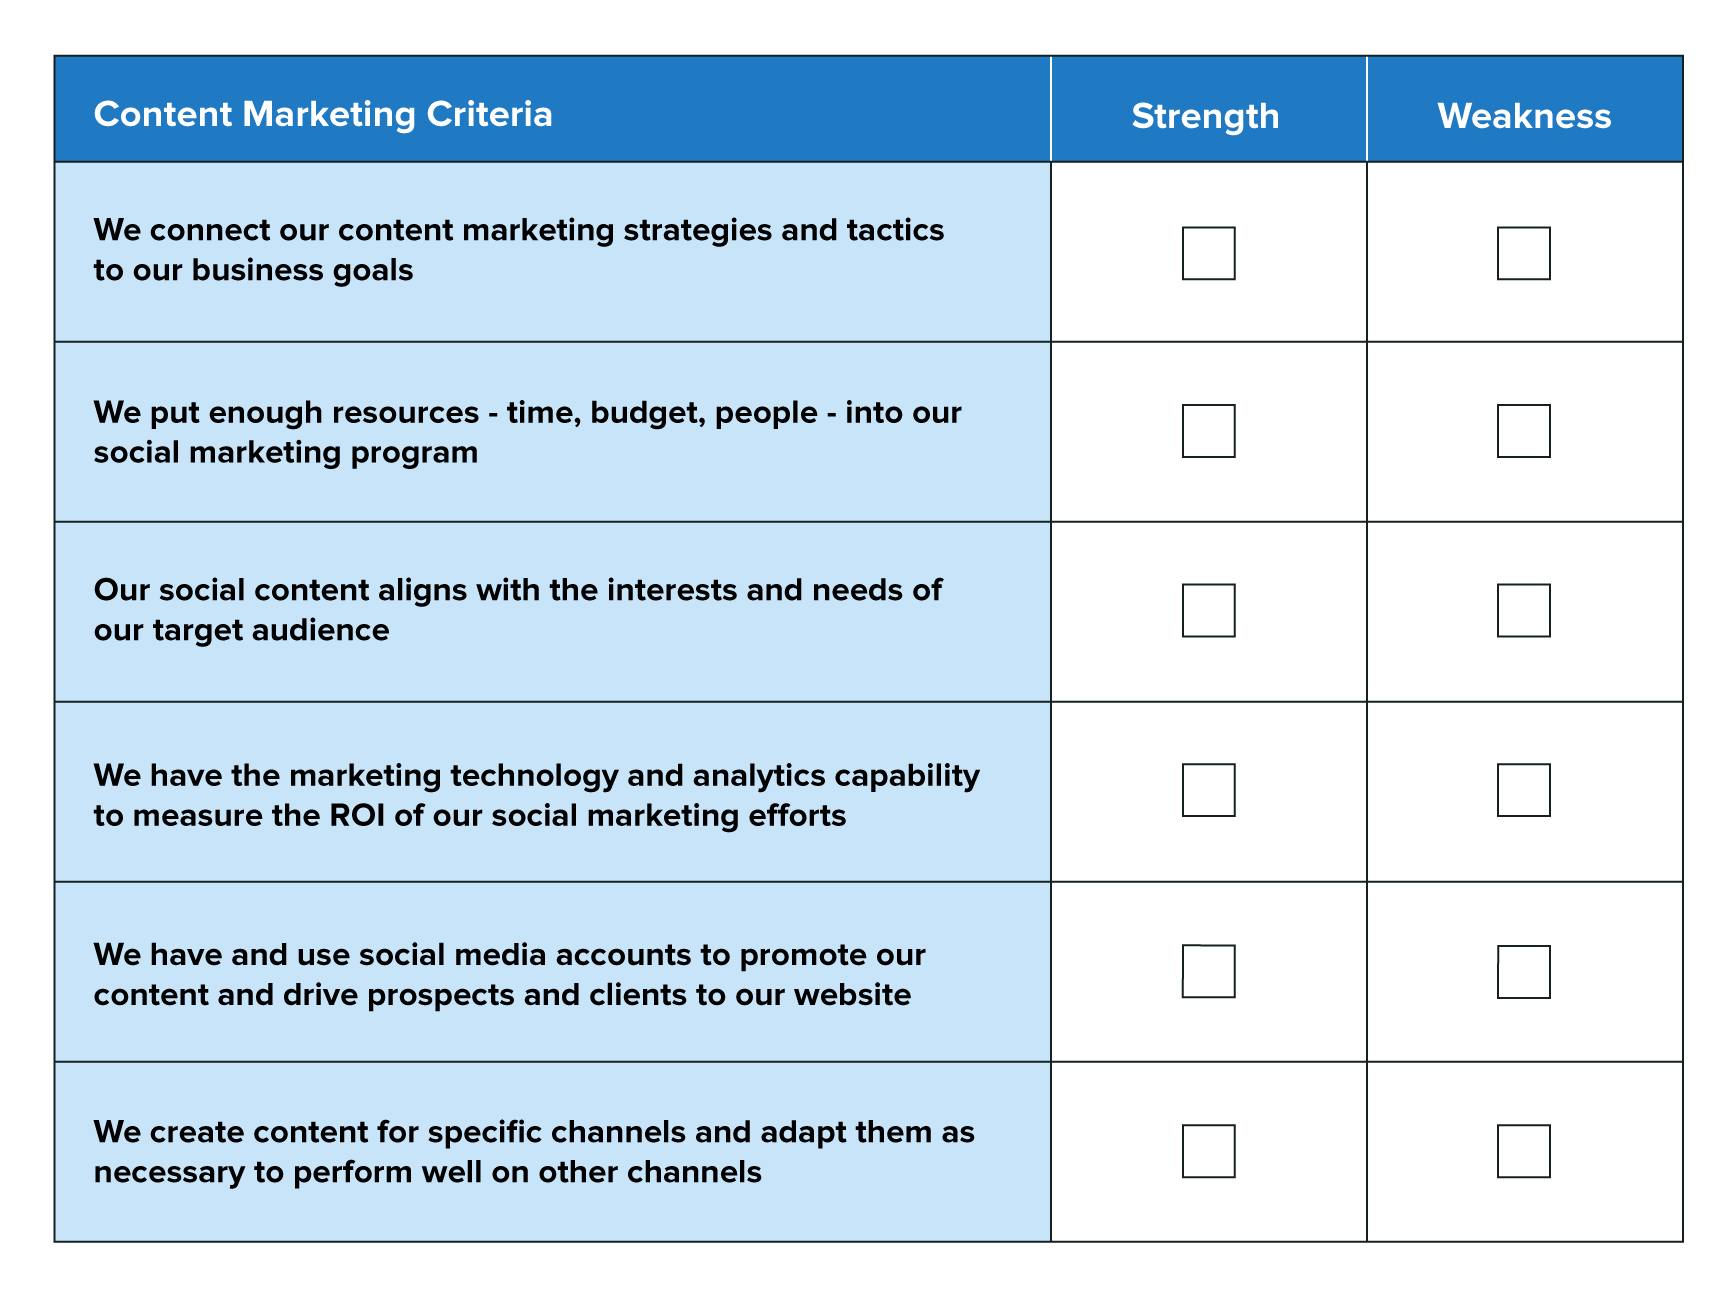 A chart to help marketers assess their strengths and weaknesses when it comes to content marketing.